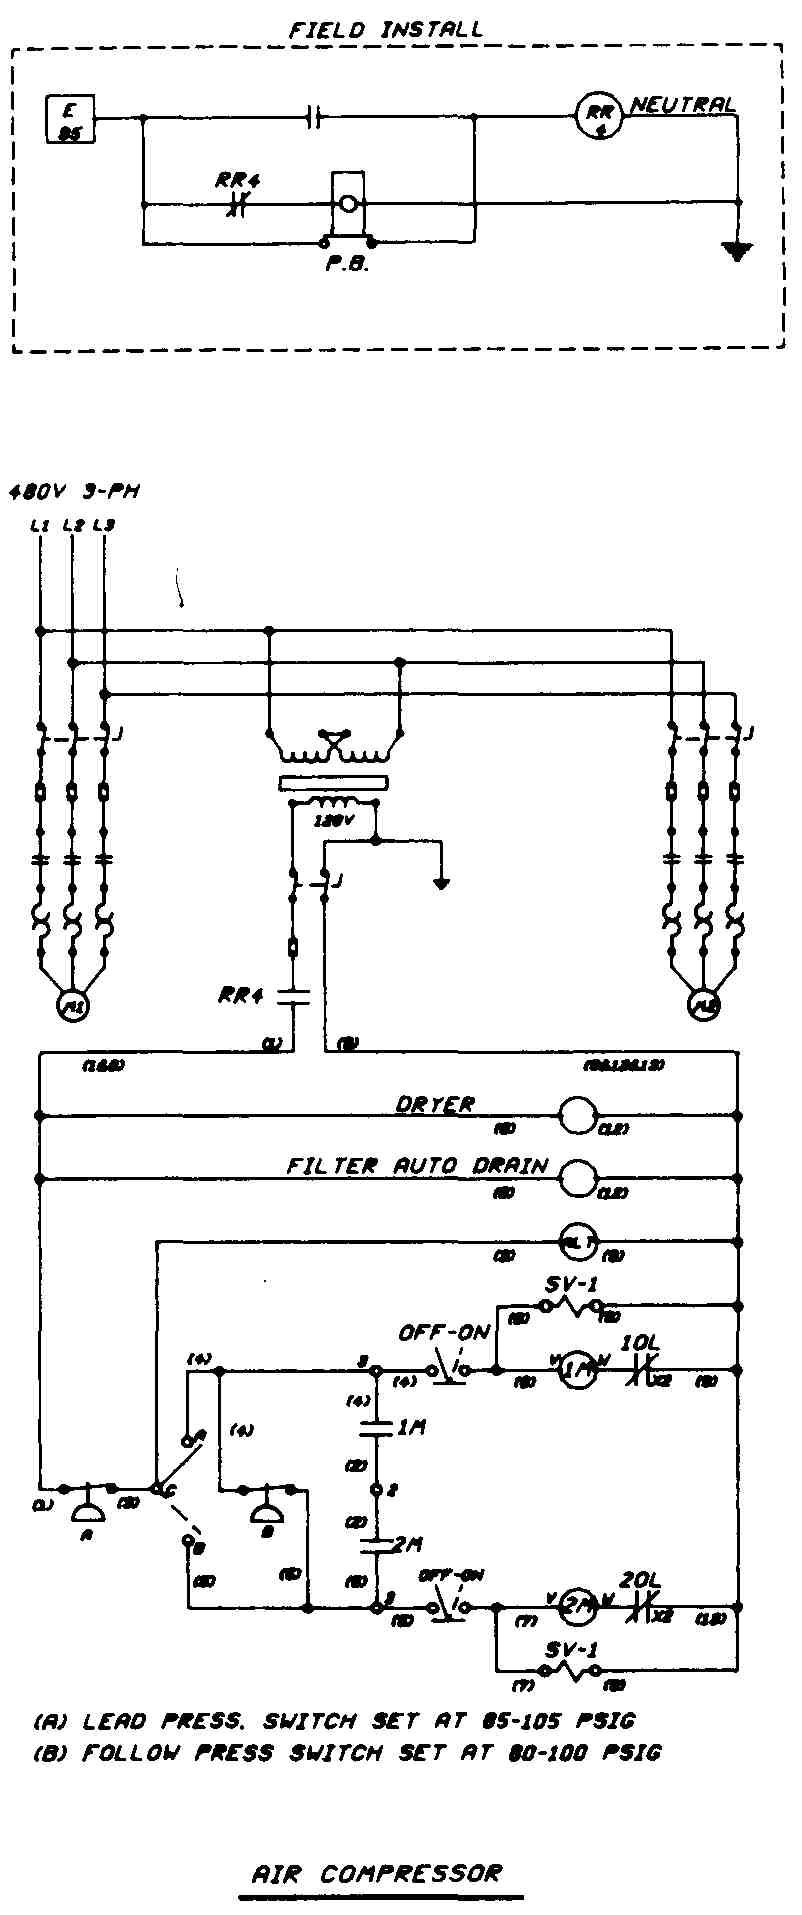 Drafting for electronics motors and control circuits part 2 fig 29 connections indicated with a dot when wires simply cross over there is no dot indicating no connection pooptronica Image collections